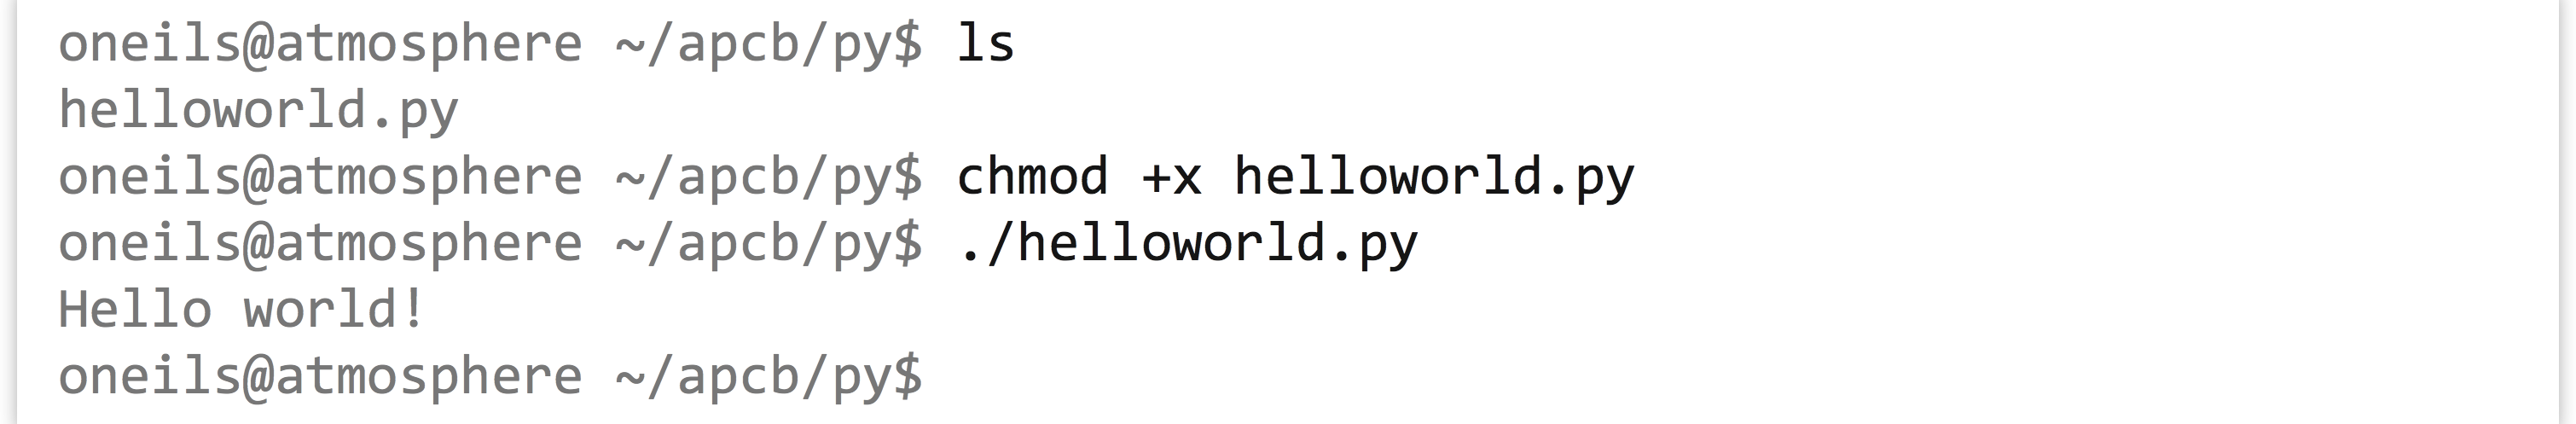 II.1_9_py_4_hello_world_chmod_output